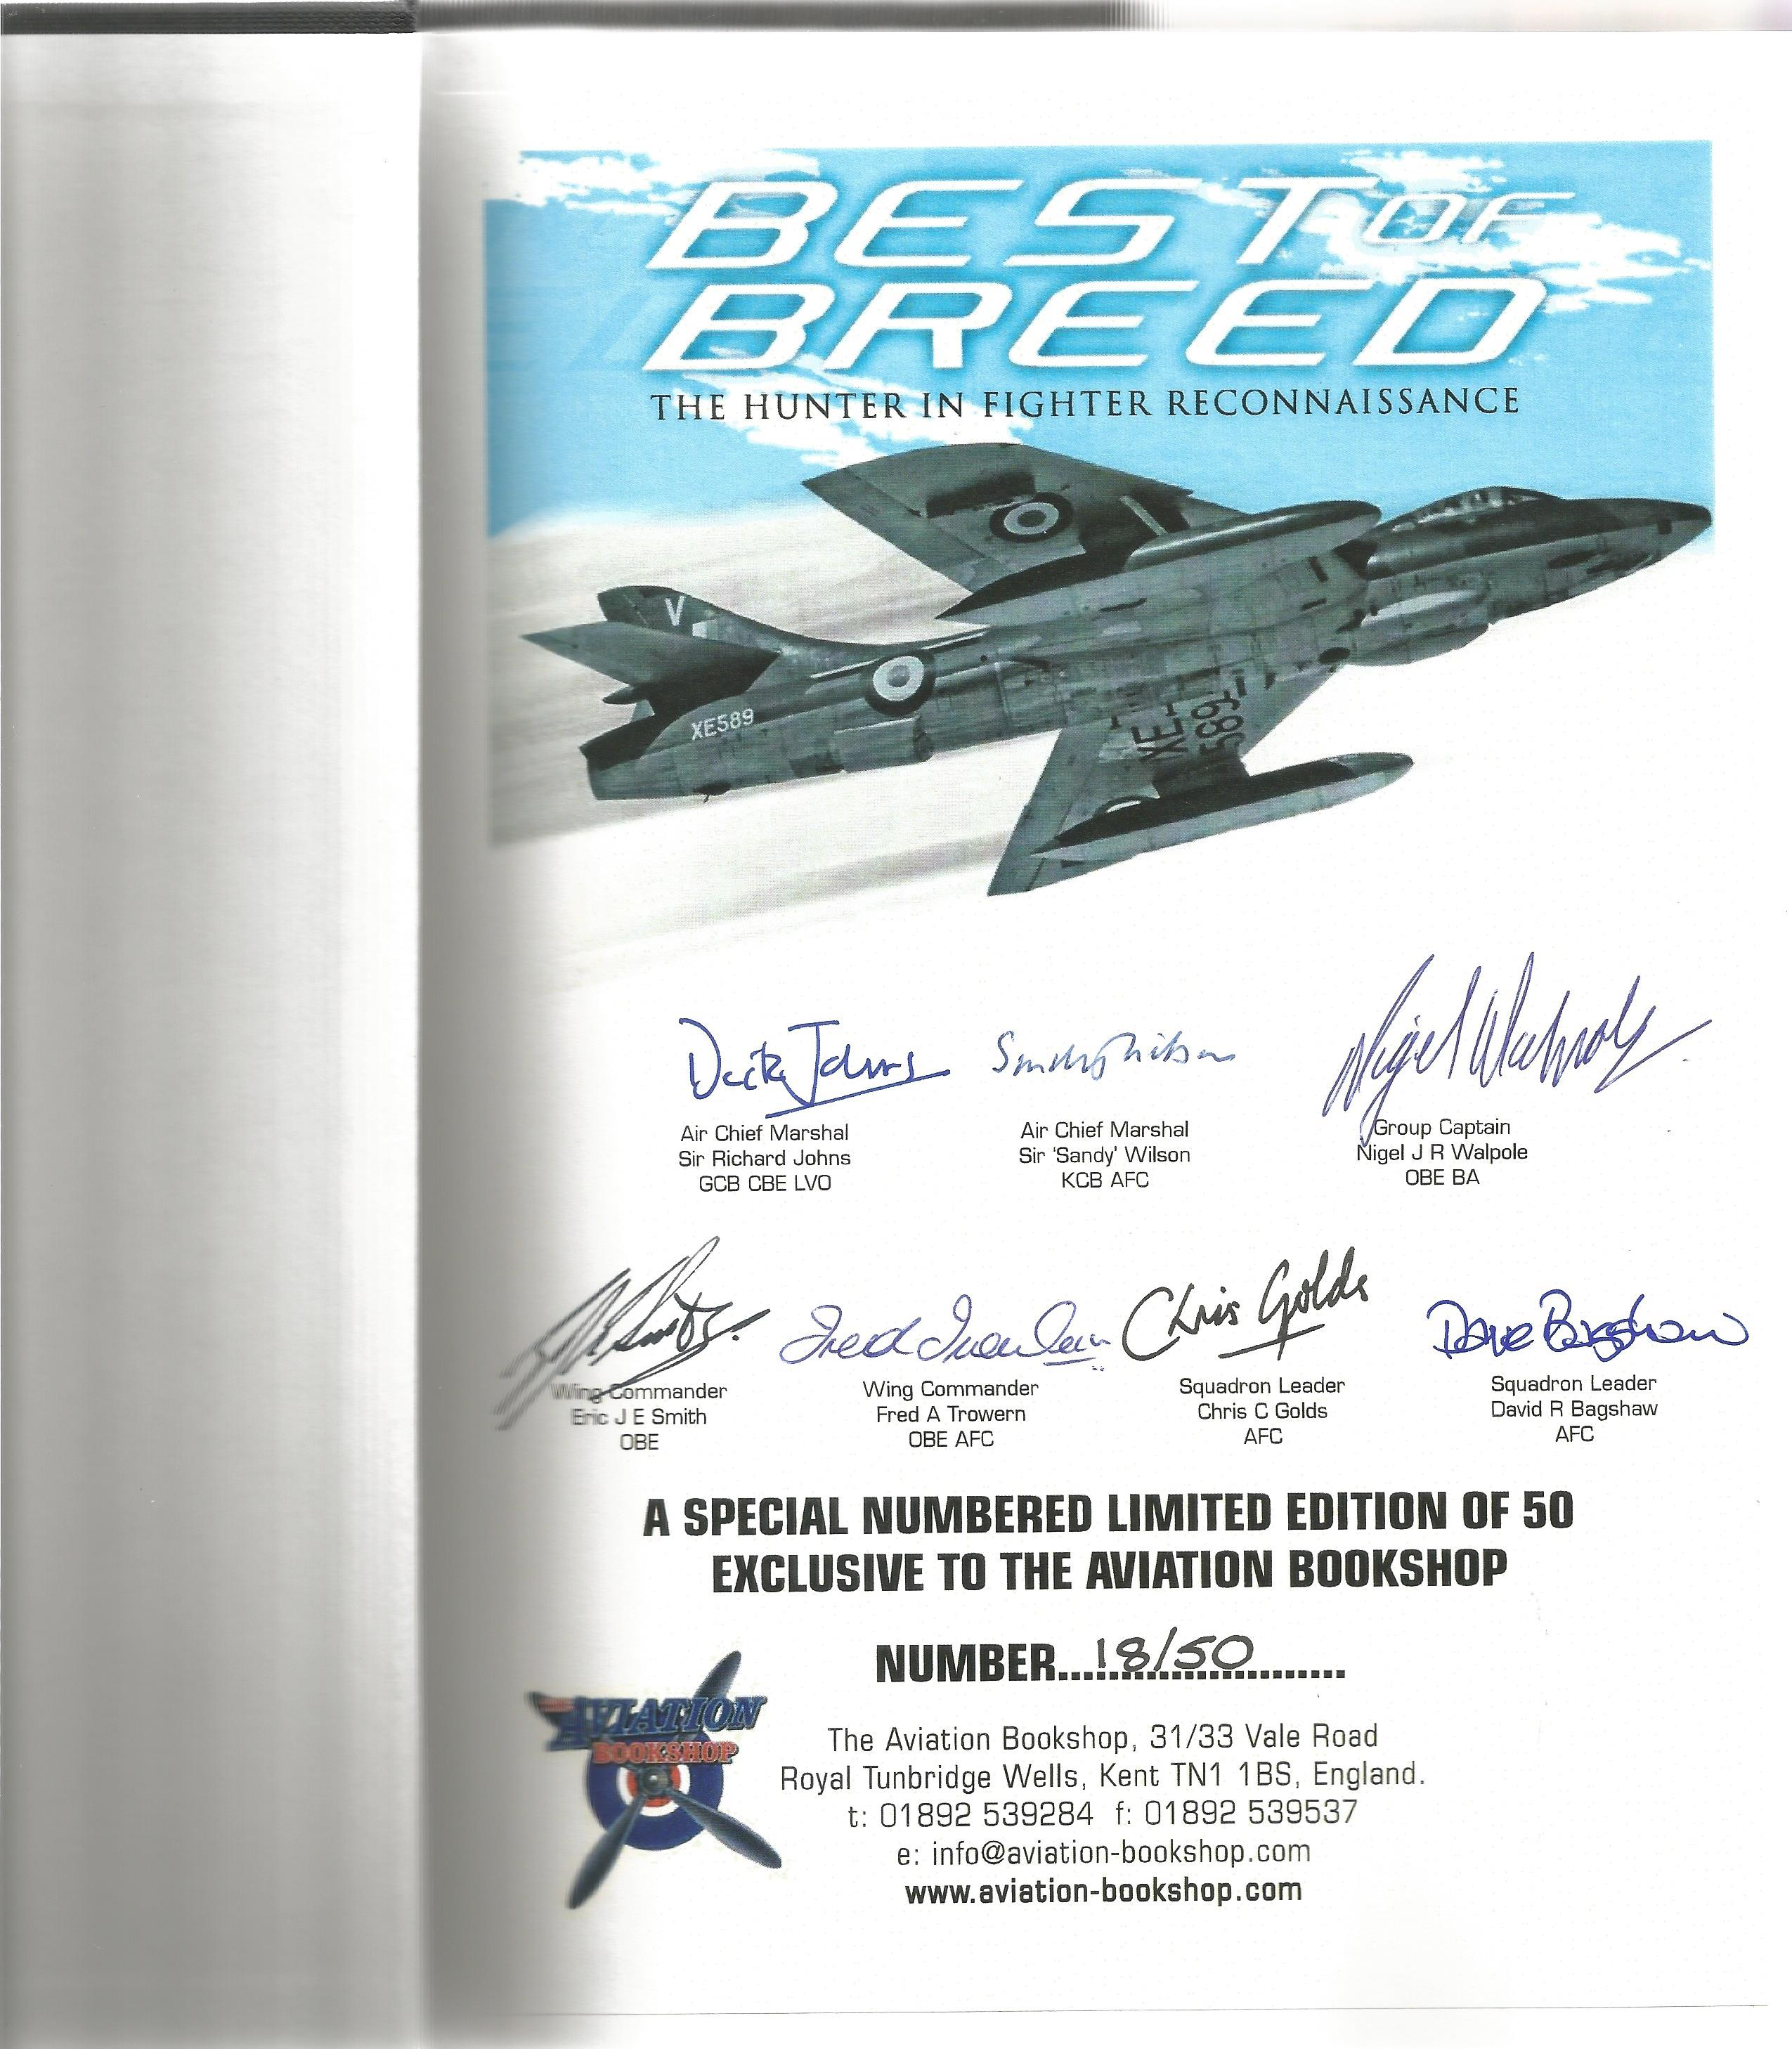 Nigel Walpole. Best Of Breed. The Hunter In Fighter Reconnaissance. A First Edition Multi Signed - Image 2 of 3